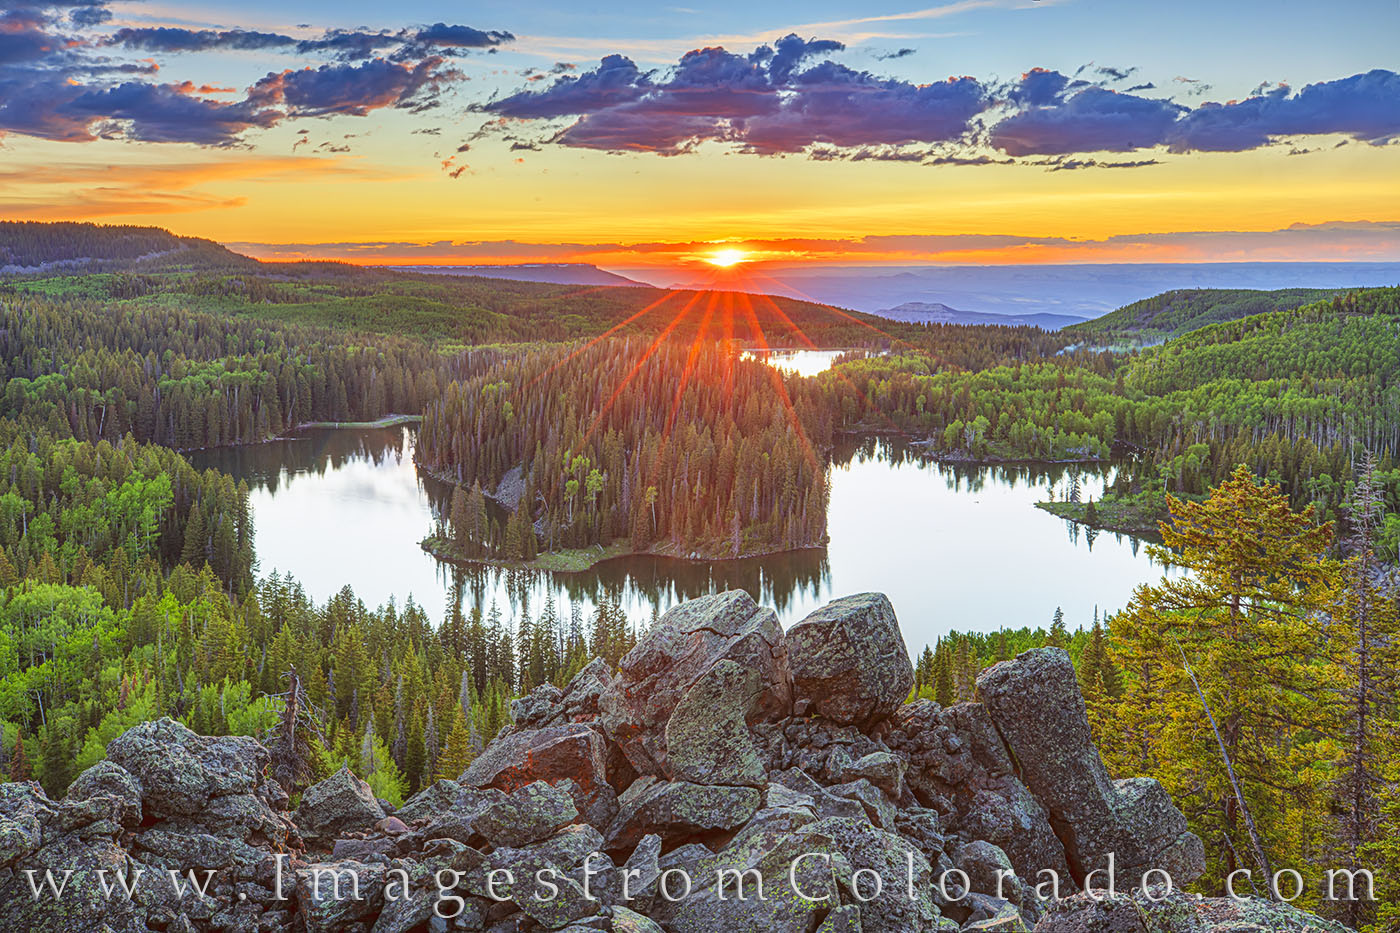 mesa lake, grand mesa, grand mesa scenic byway, mesa lakes, sunset, panorama, western colorado, grand junction, hike, hidden gem, photo